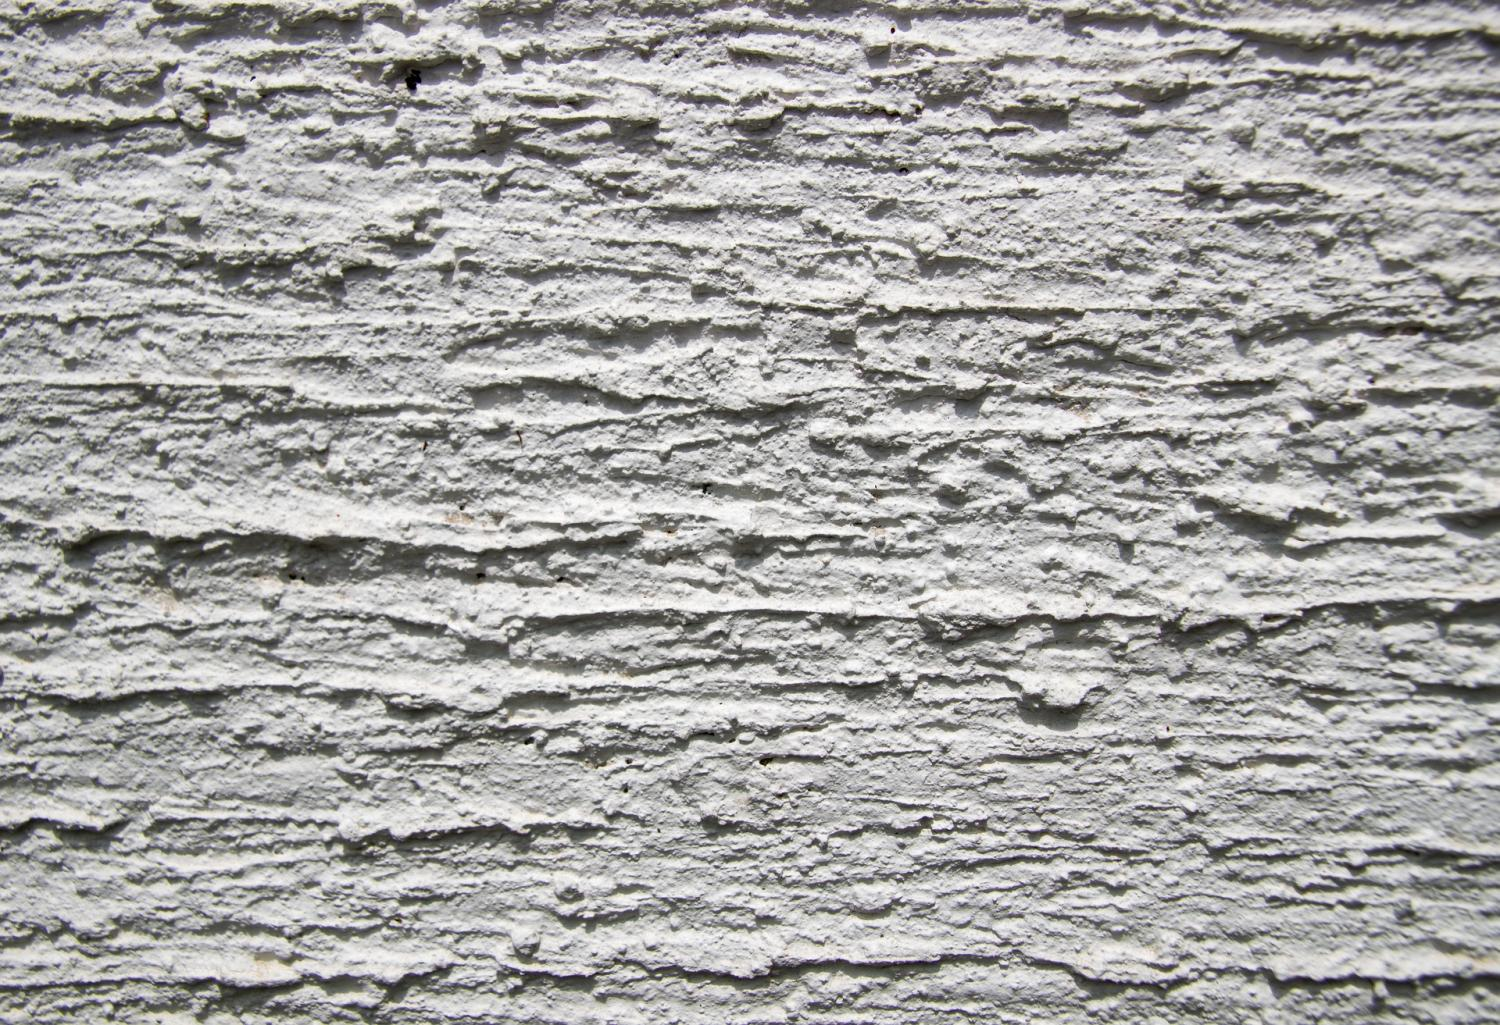 Cement Materials Are An Overlooked And Substantial Carbon